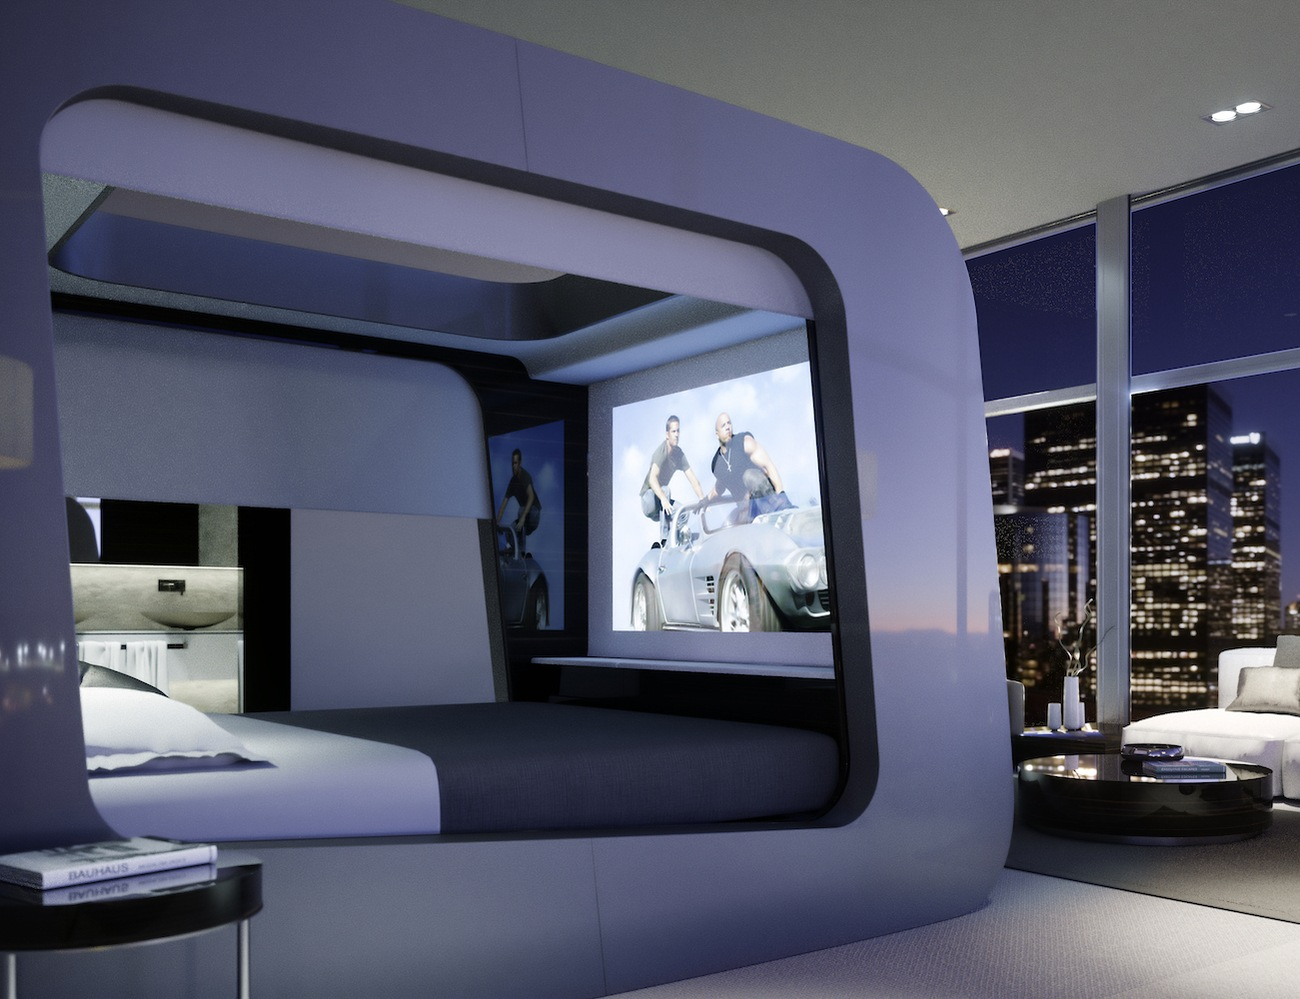 HiCan – Revolutionary Smart Bed is made for the future